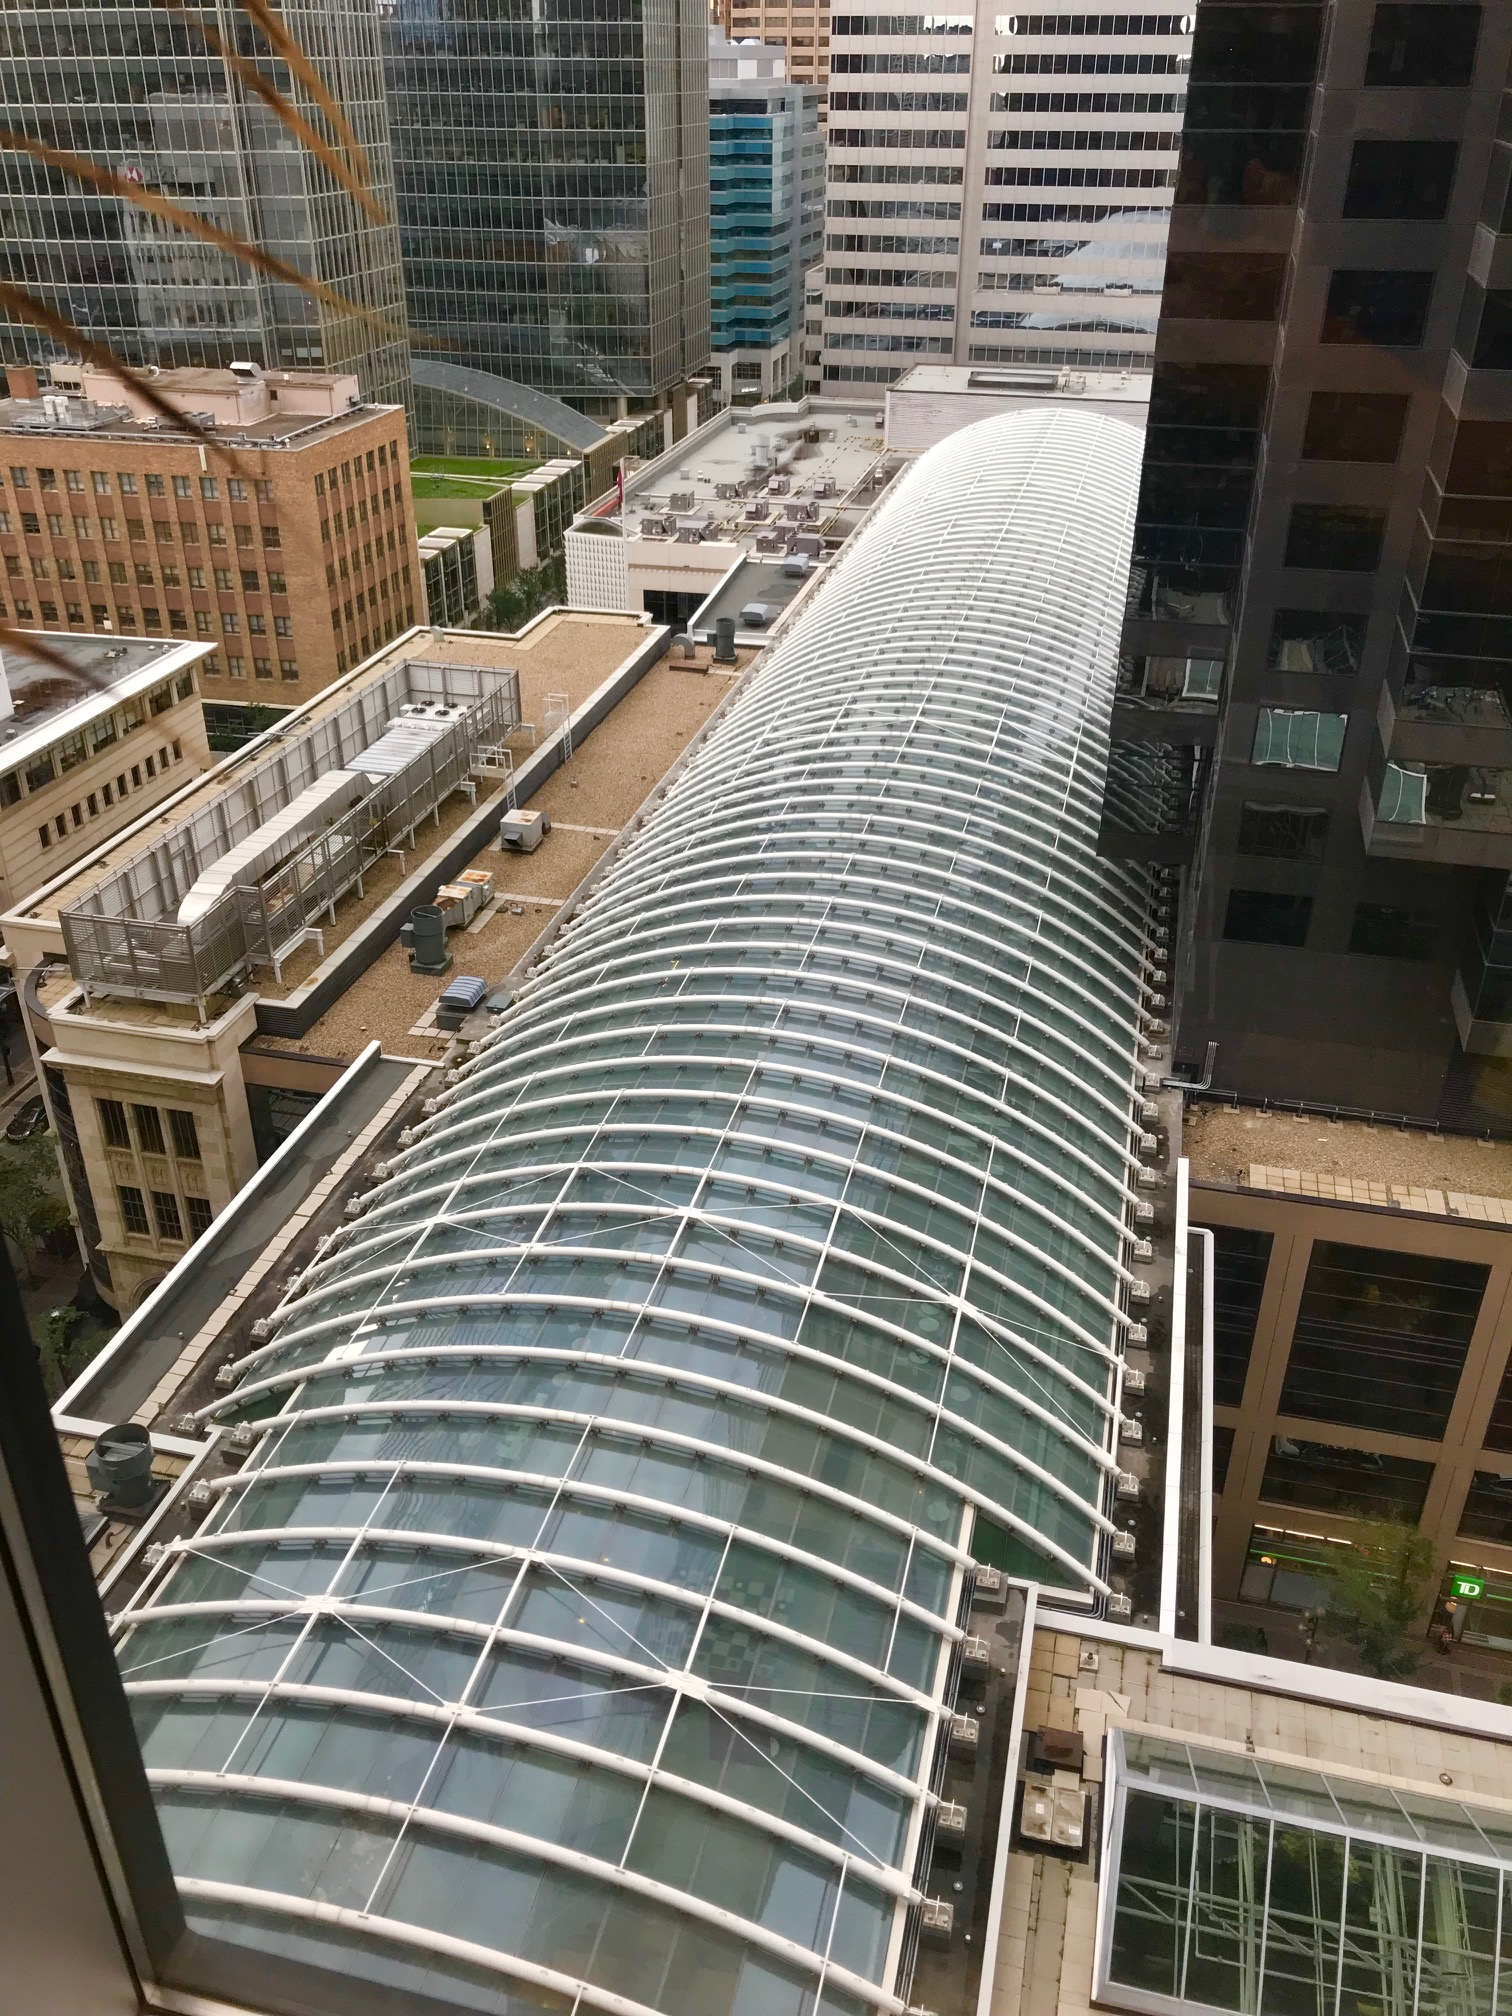 By chance I looked out the window of my financial advisor's office in downtown Calgary and saw this amazing view of the sky-light of The Core shopping centre. It is the longest point supported structural skylight in the world. Not sure exactly what that means, but it is impressive inside and out. Remember to always look out the window in 2019!